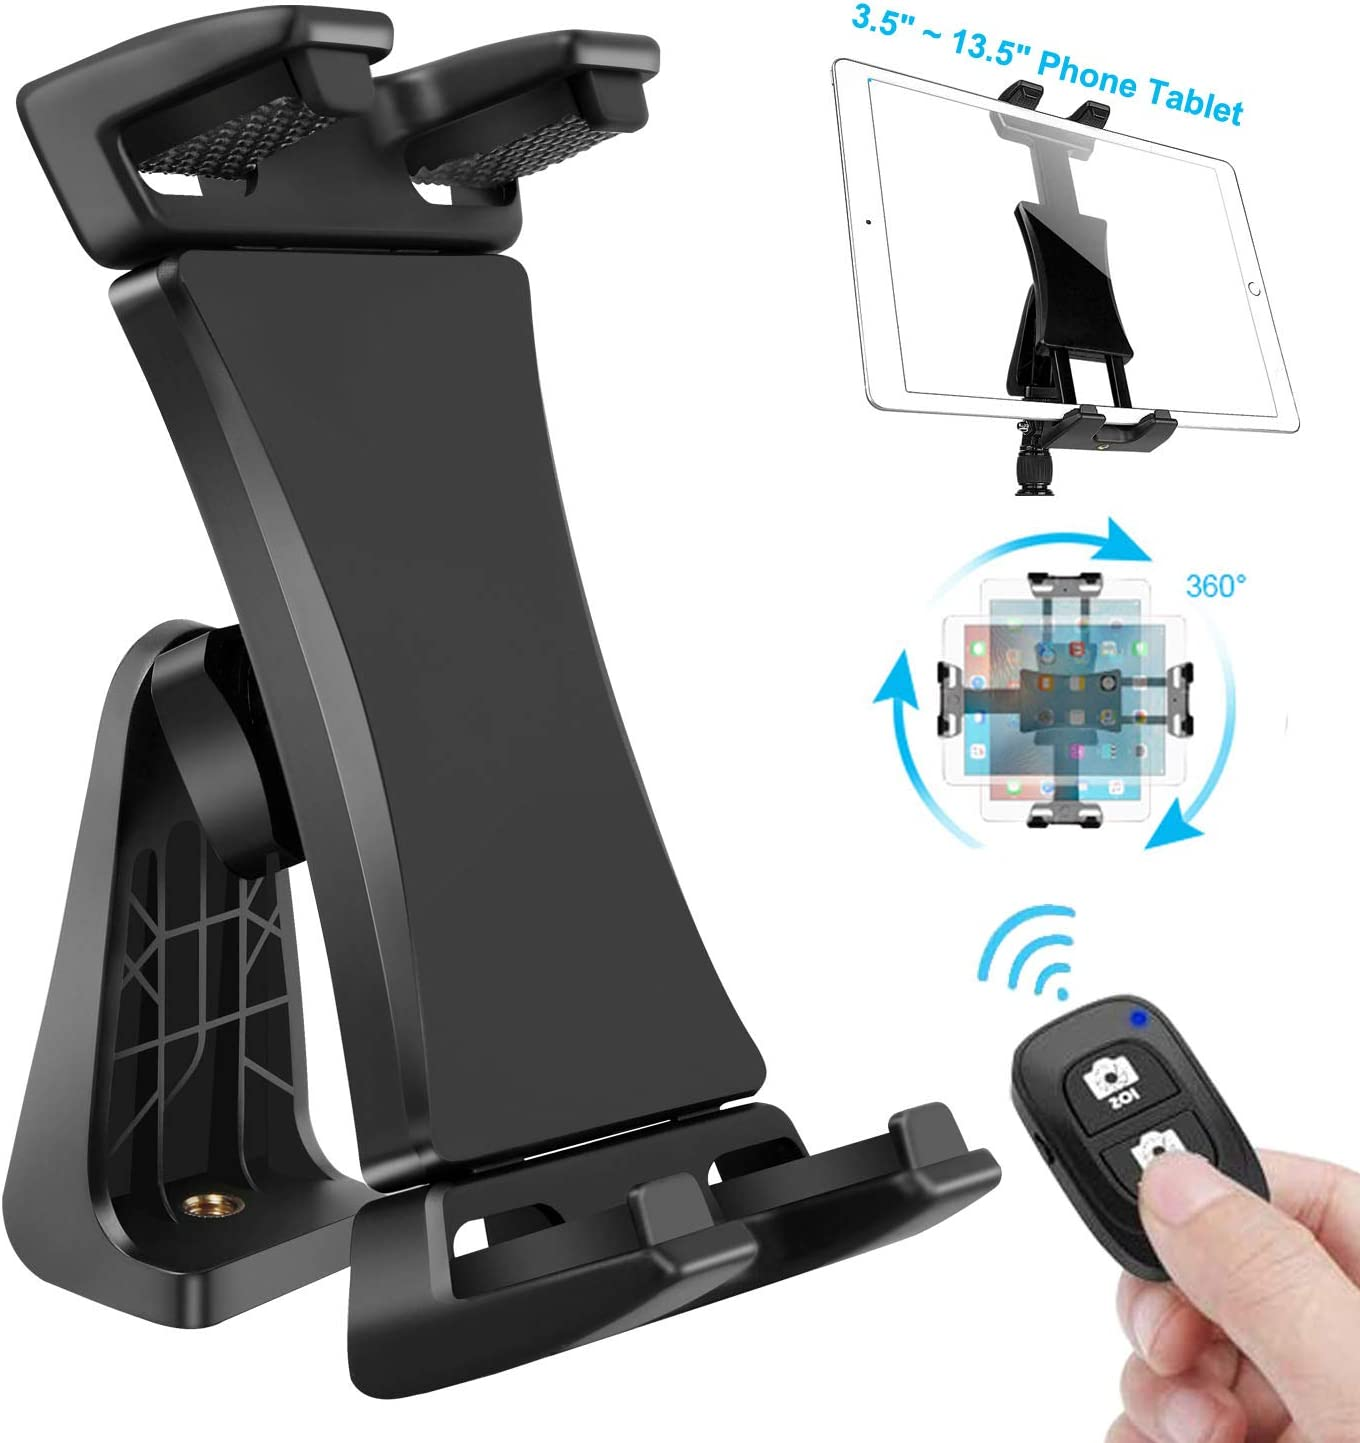 IPad Tablet Tripod Mount Adapter 360 Degree Rotatable Universal Clamp Holder with Bluetooth Remote for iPad Pro 12.9 11 10.5, iPad Air Mini, Surface Tab, Galaxy Tab and 3.5 to 13.5in Phone Tablets